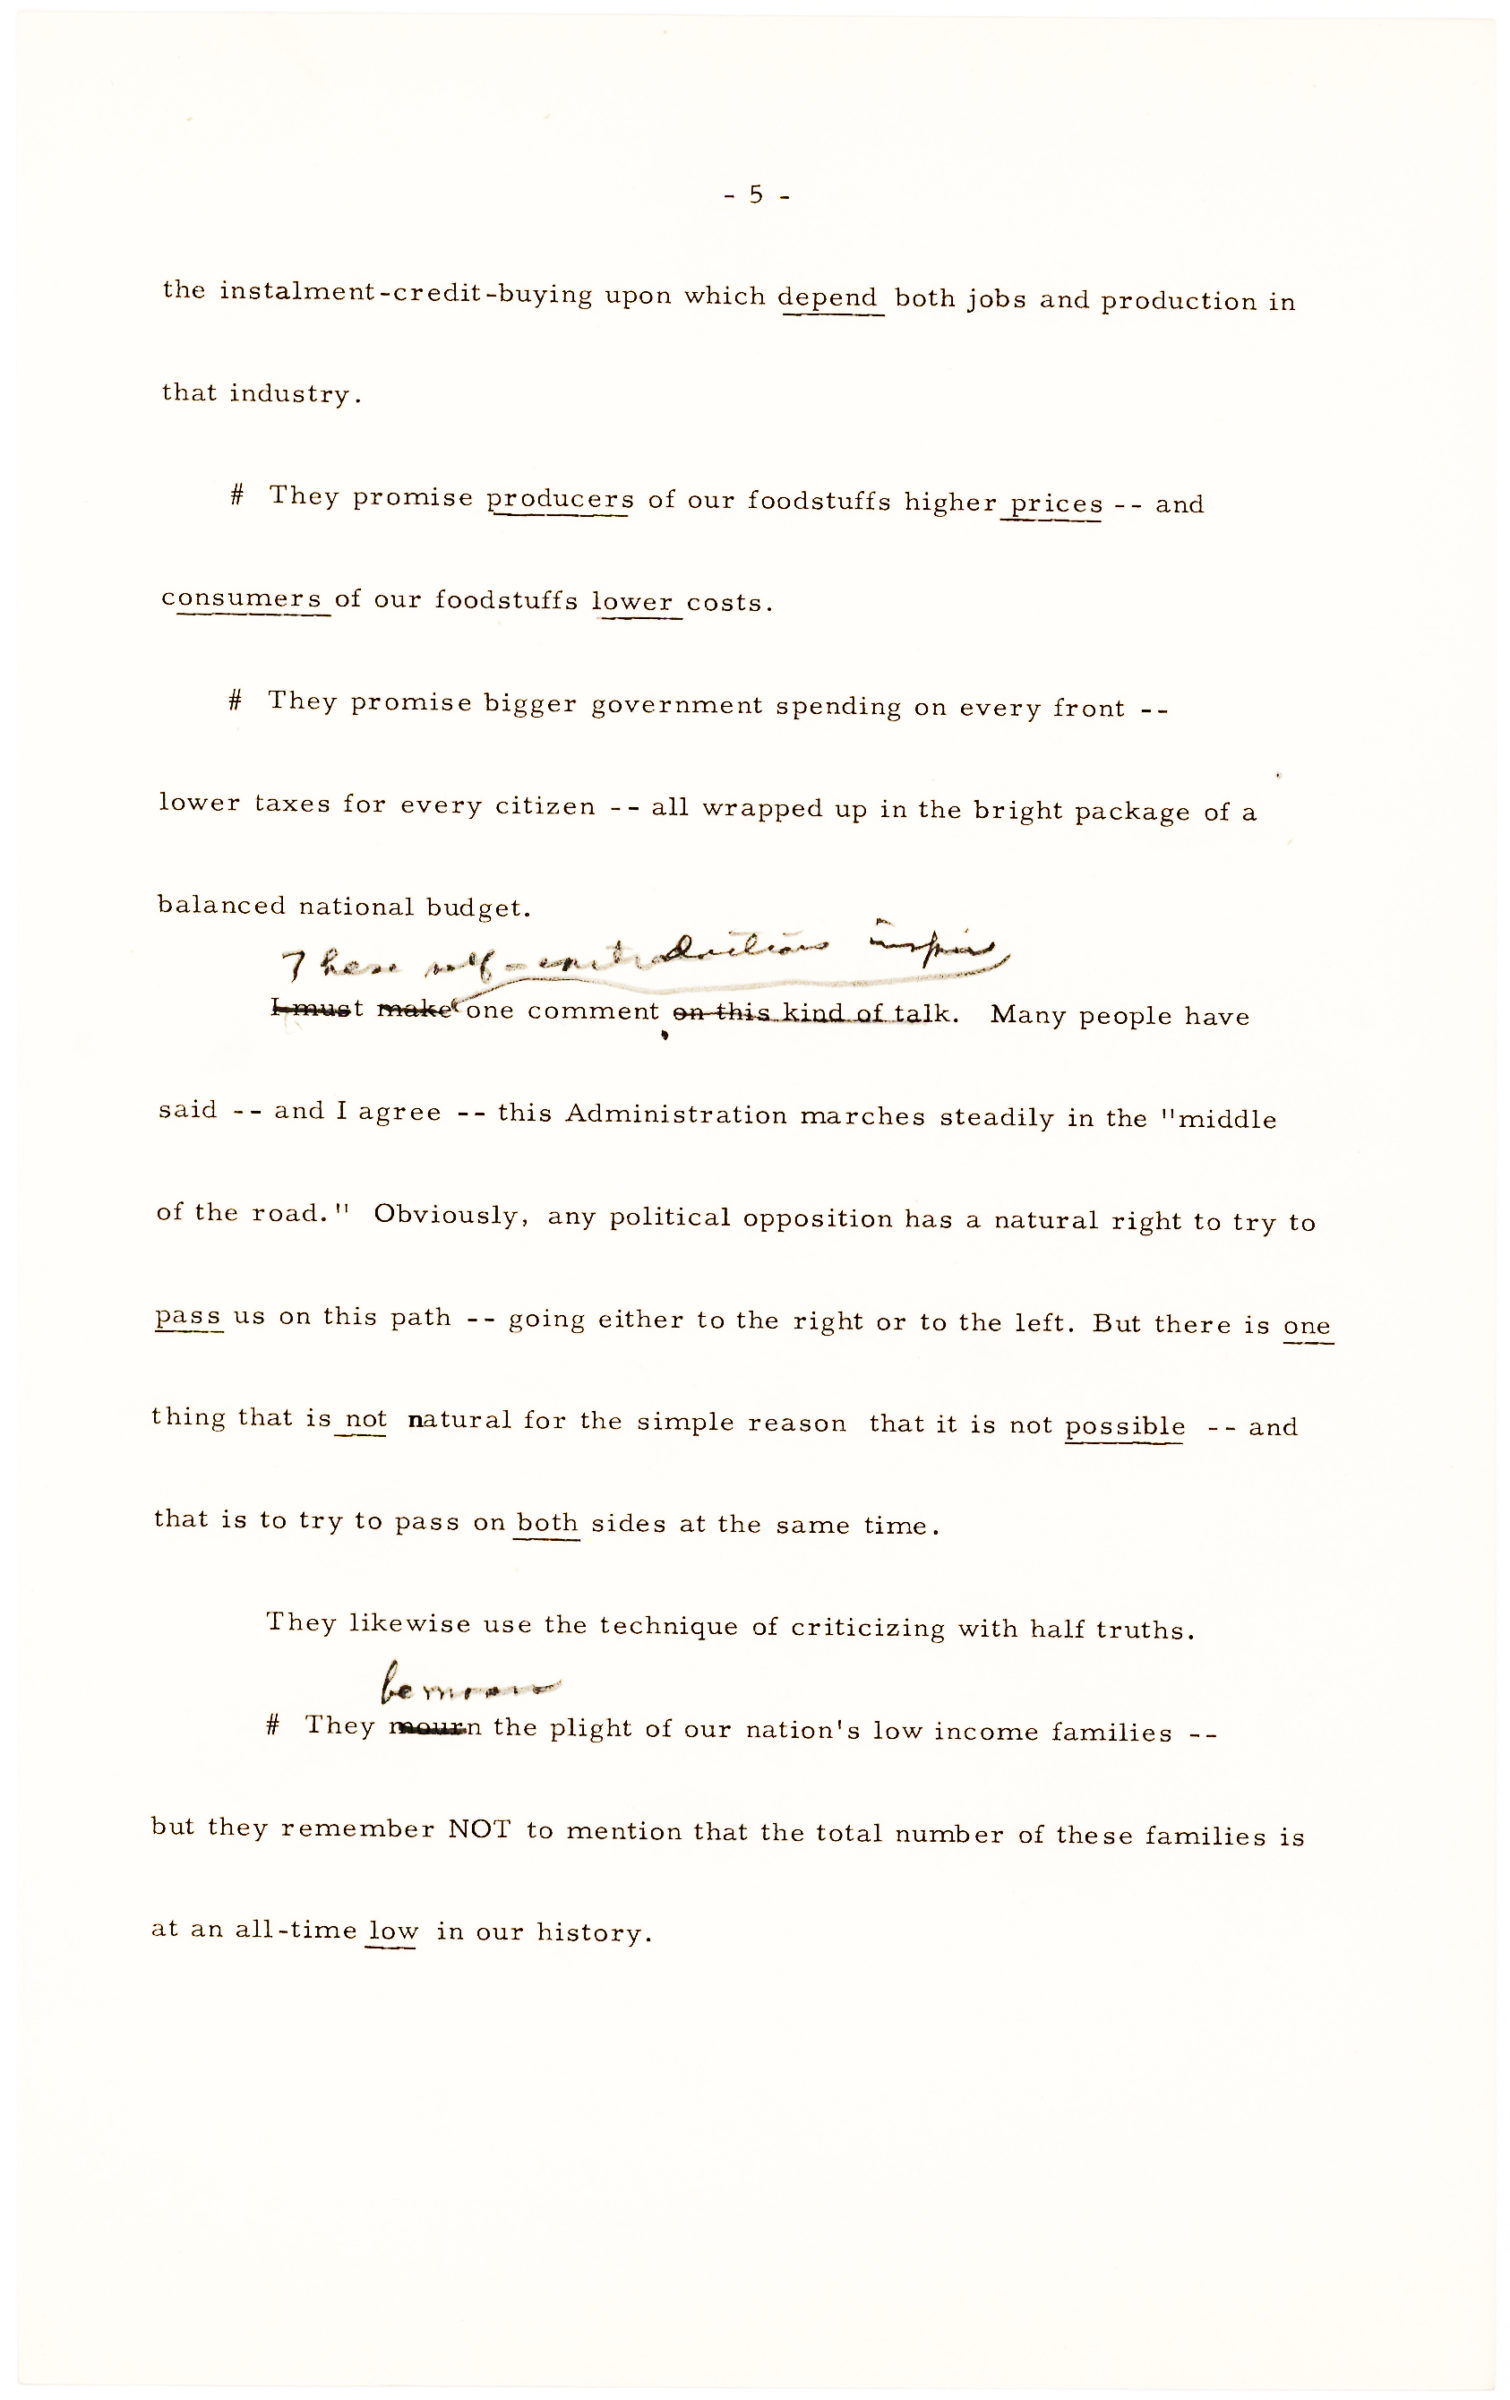 Six Pages of One of Eisenhower's Last Speeches Drafted Before Election Day 1956, Given at Pittsbugh's Hunt Armory